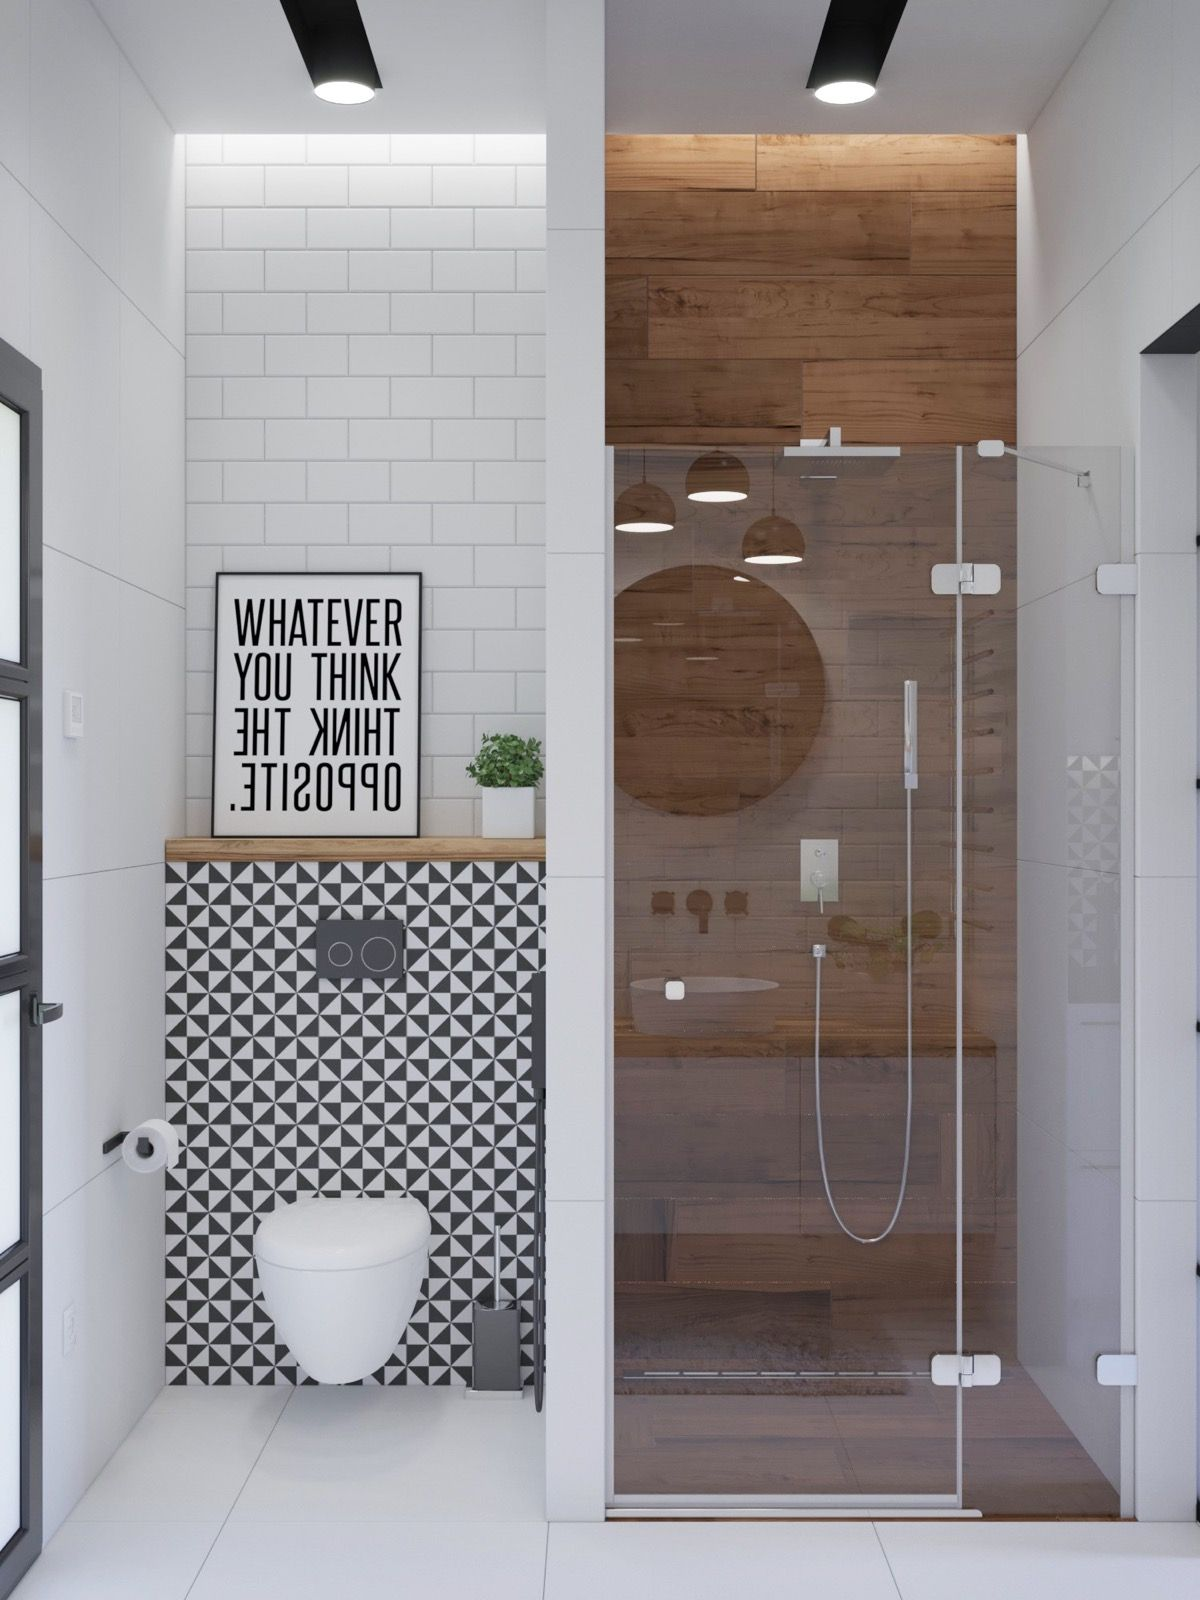 10 Modern Bathroom Design Ideas Plus Tips On How To Accessorize